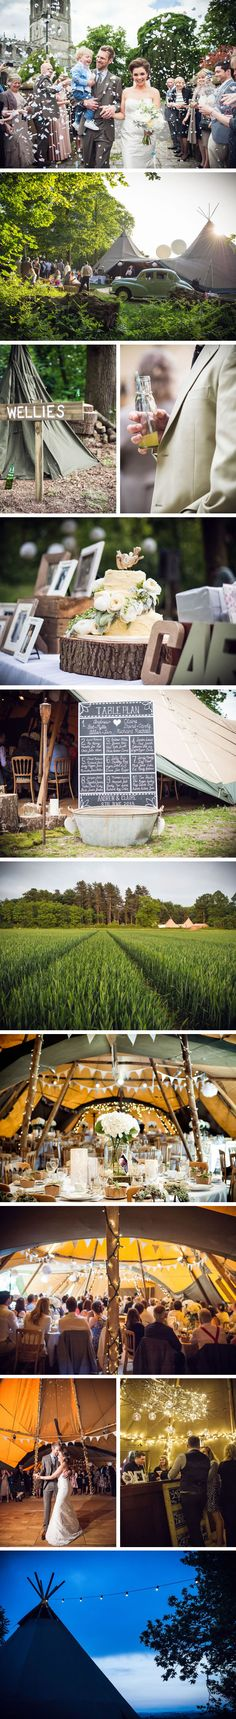 Here's a wedding reception held in what i consider to be the ultimate festival tent, a Papakata Teepee. They look amazing and our mates at papakata do a great job, have some awesome decoration and furniture and always look after our wedding parties.